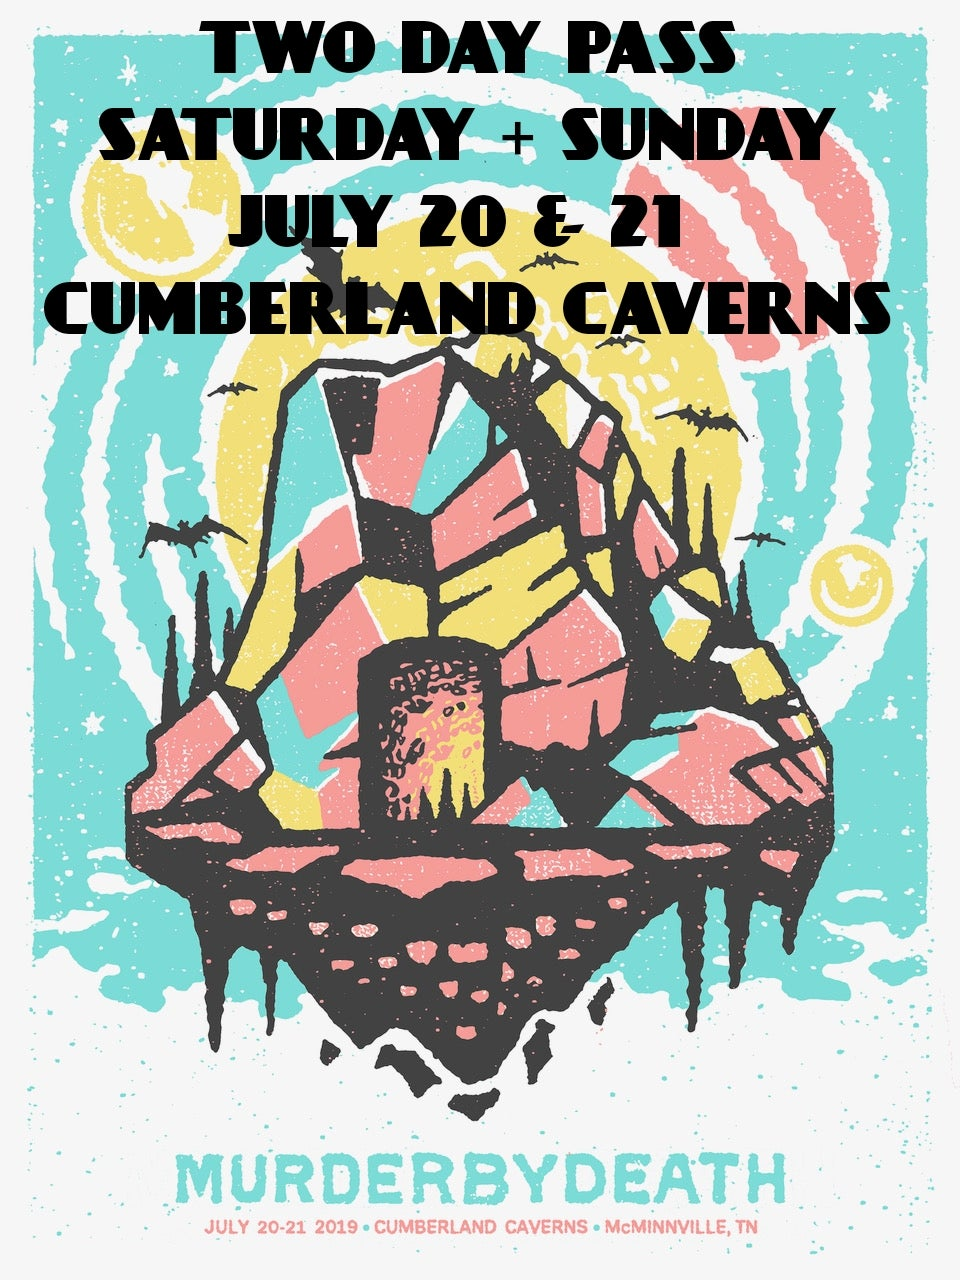 Image of Will call ticket for both Saturday July 20 & Sunday July 21 Cave Shows w/ poster